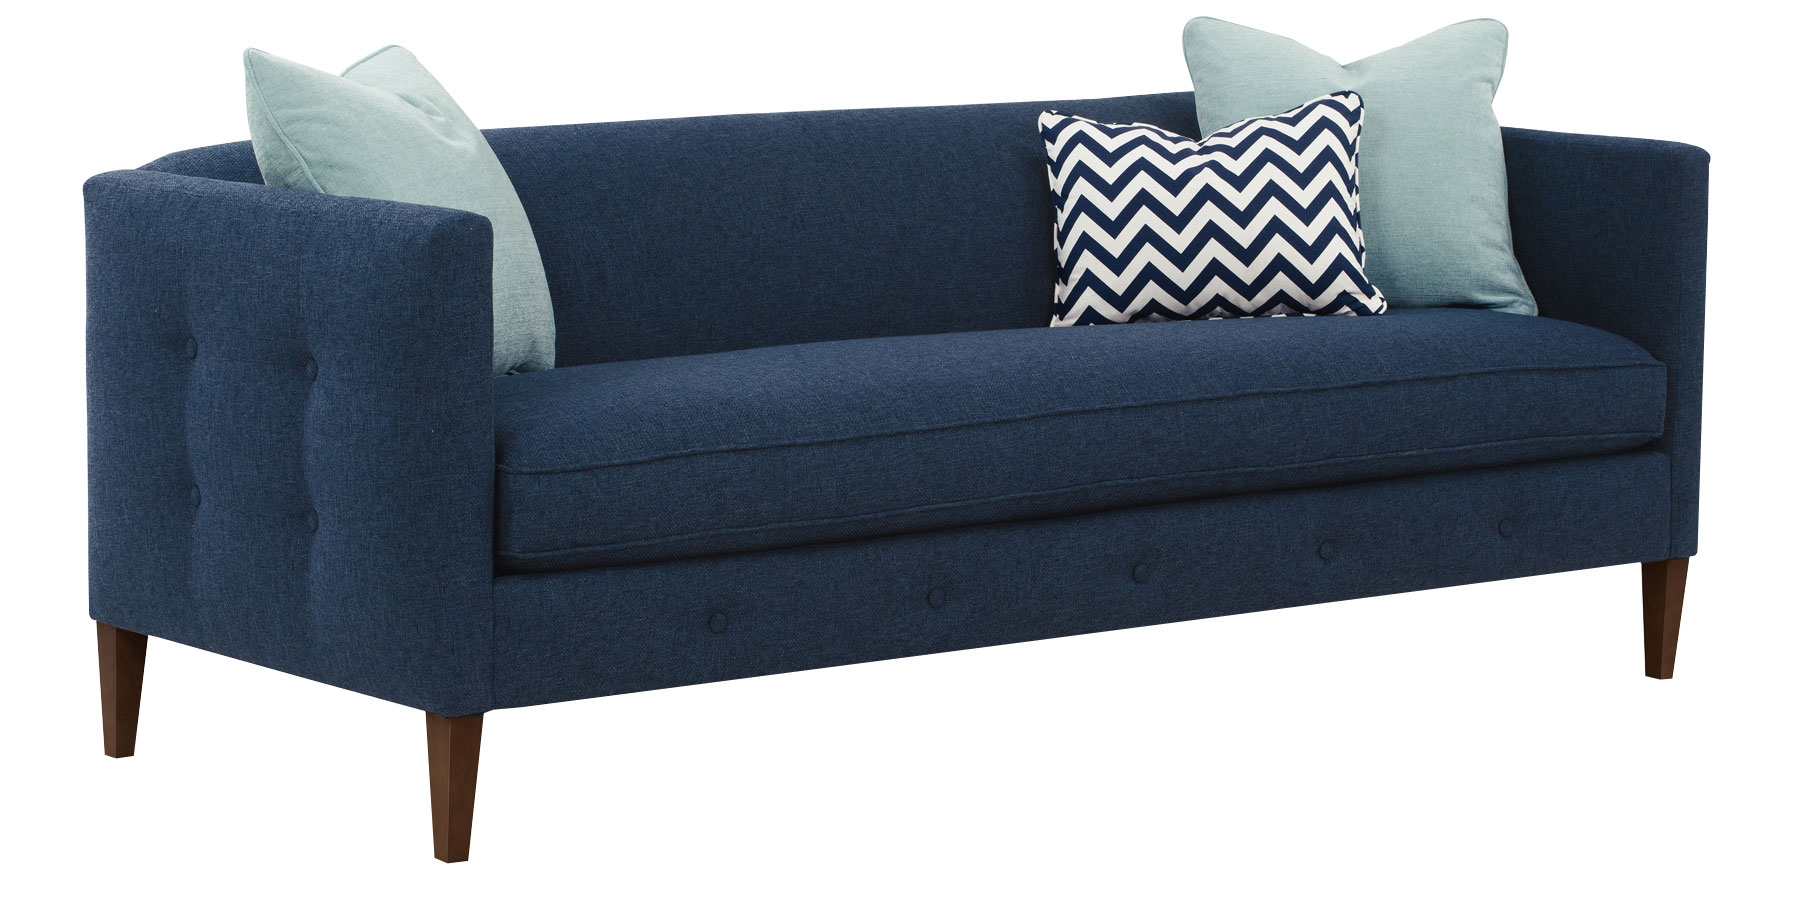 Bench Seat Button Tufted Exterior Fabric Sofa Group Club